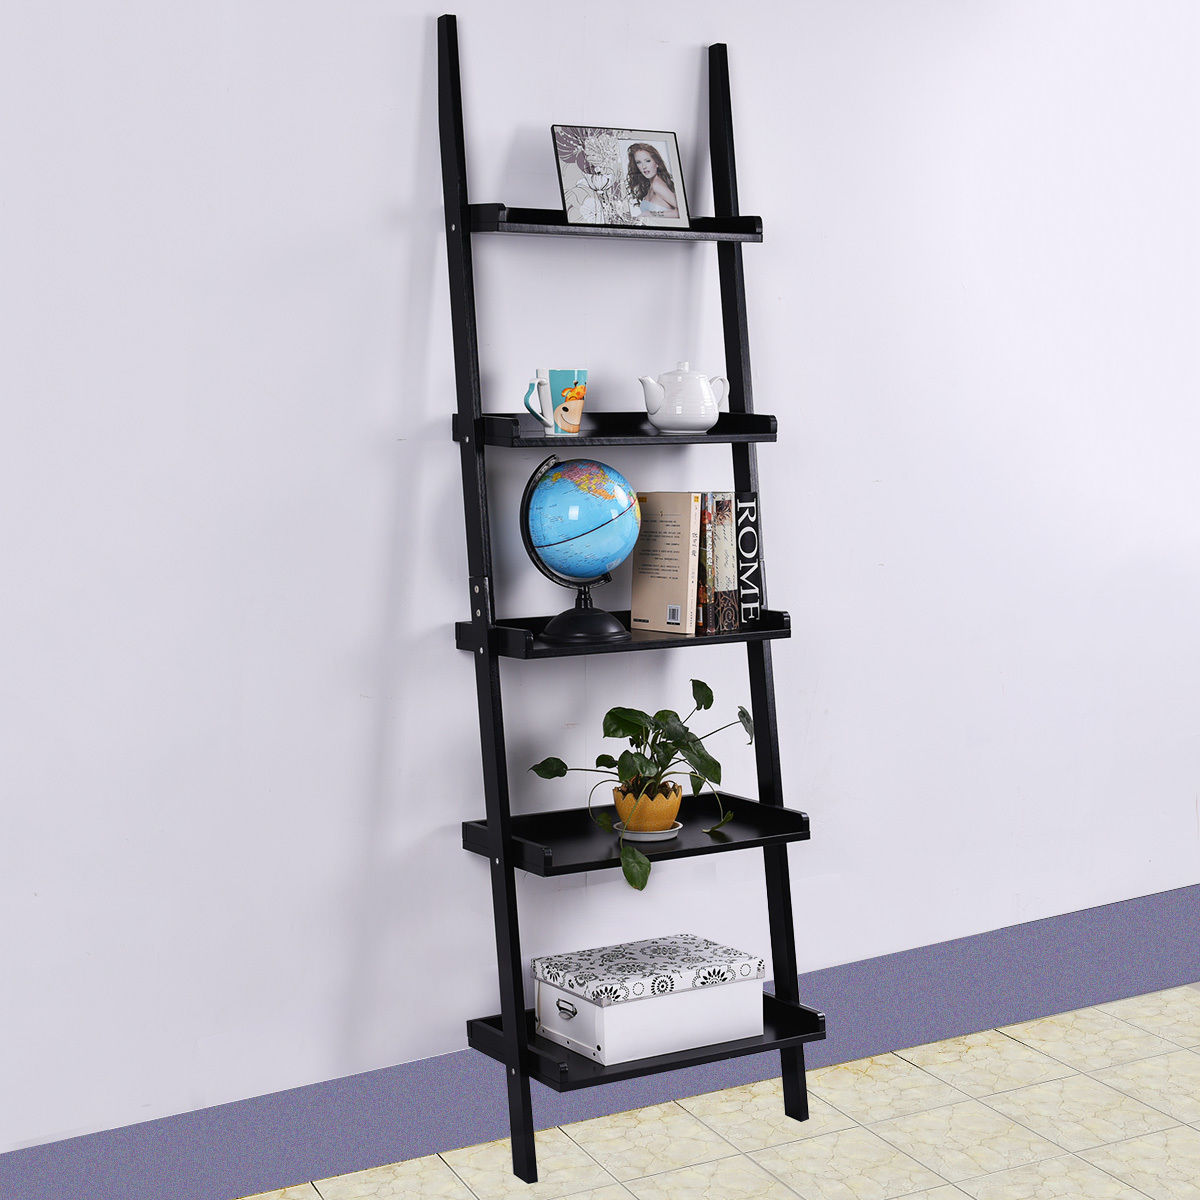 Goplus 5 Tier Bookshelf Leaning Wall Shelf Ladder Bookcase Storage Display  Furniture Black